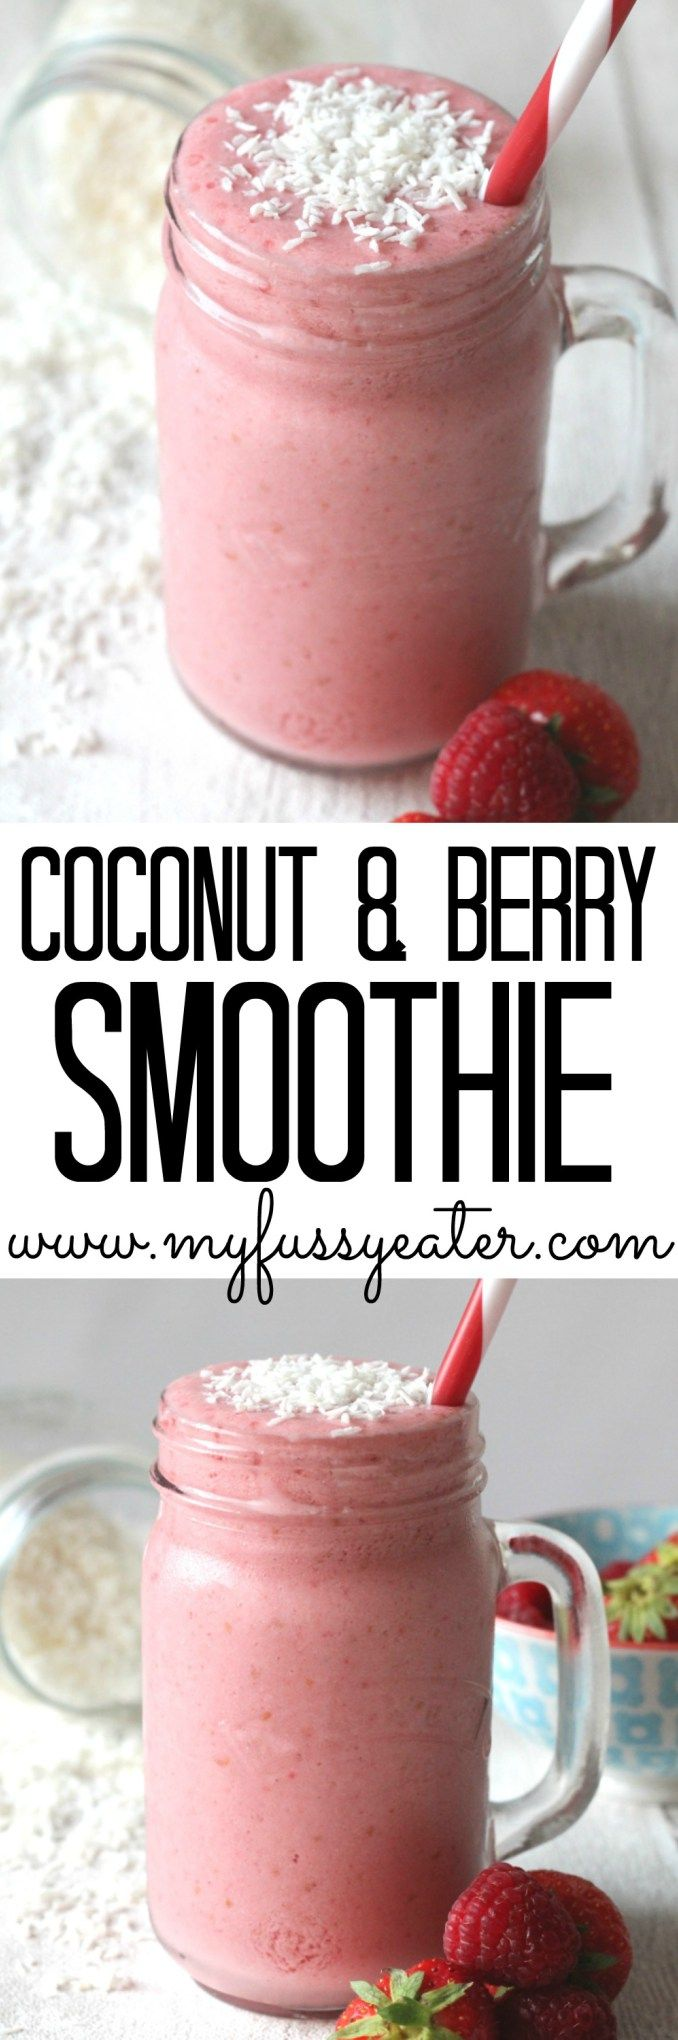 A delicious and refreshing recipe for a vegan Coconut & Berry Smoothie made with coconut milk, coconut water, frozen banana and berries